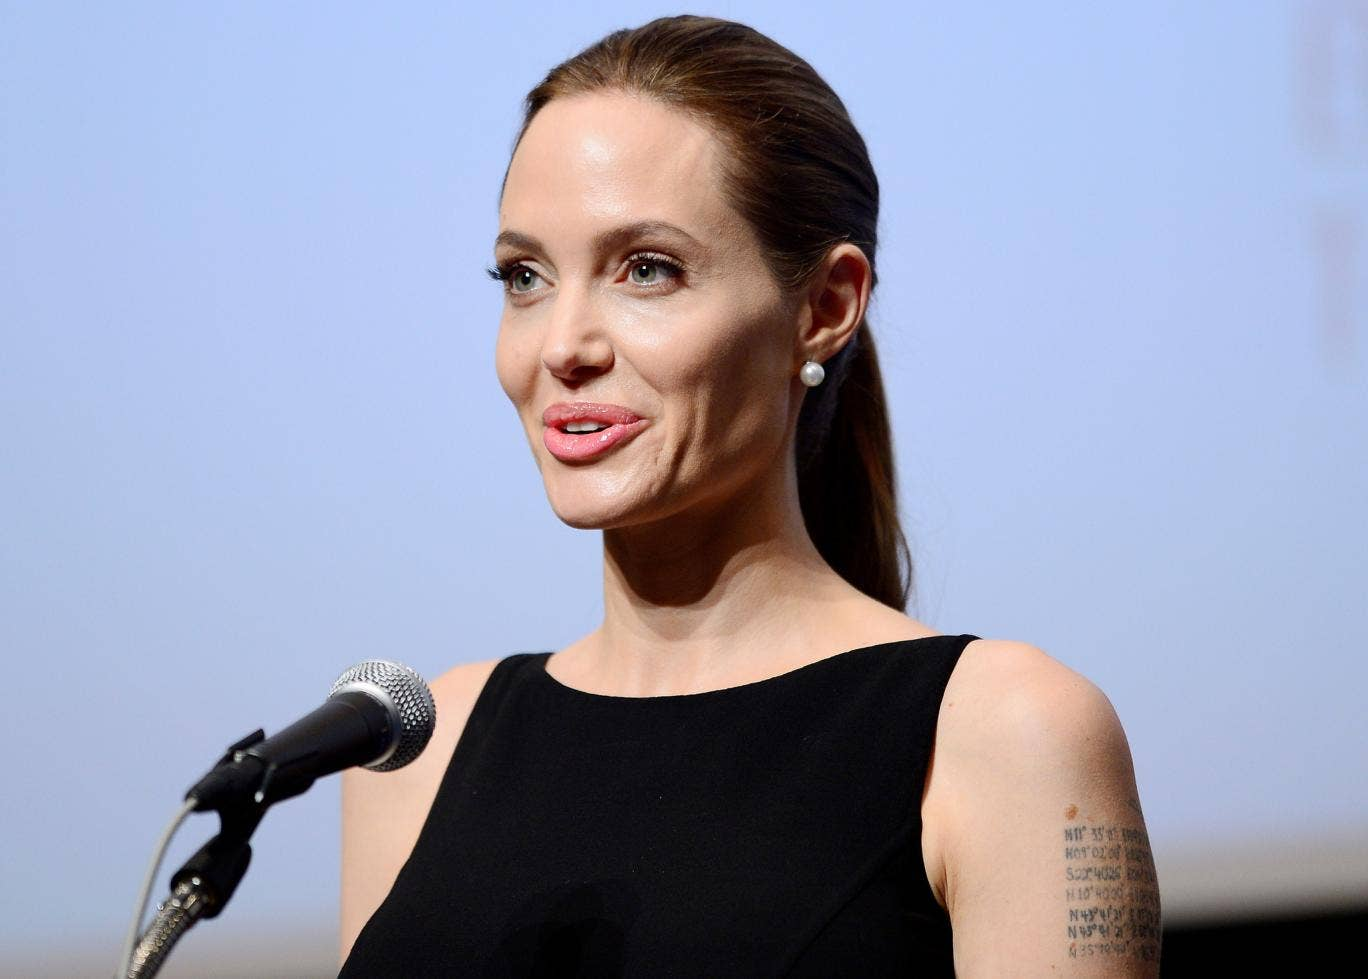 Angelina Jolie makes a speech before a screening of the movie 'In the Land of Blood and Honey' which she directed, at United Nations University in Tokyo on 29 July. She has been named the highest-paid actress in Hollywood by Forbes.